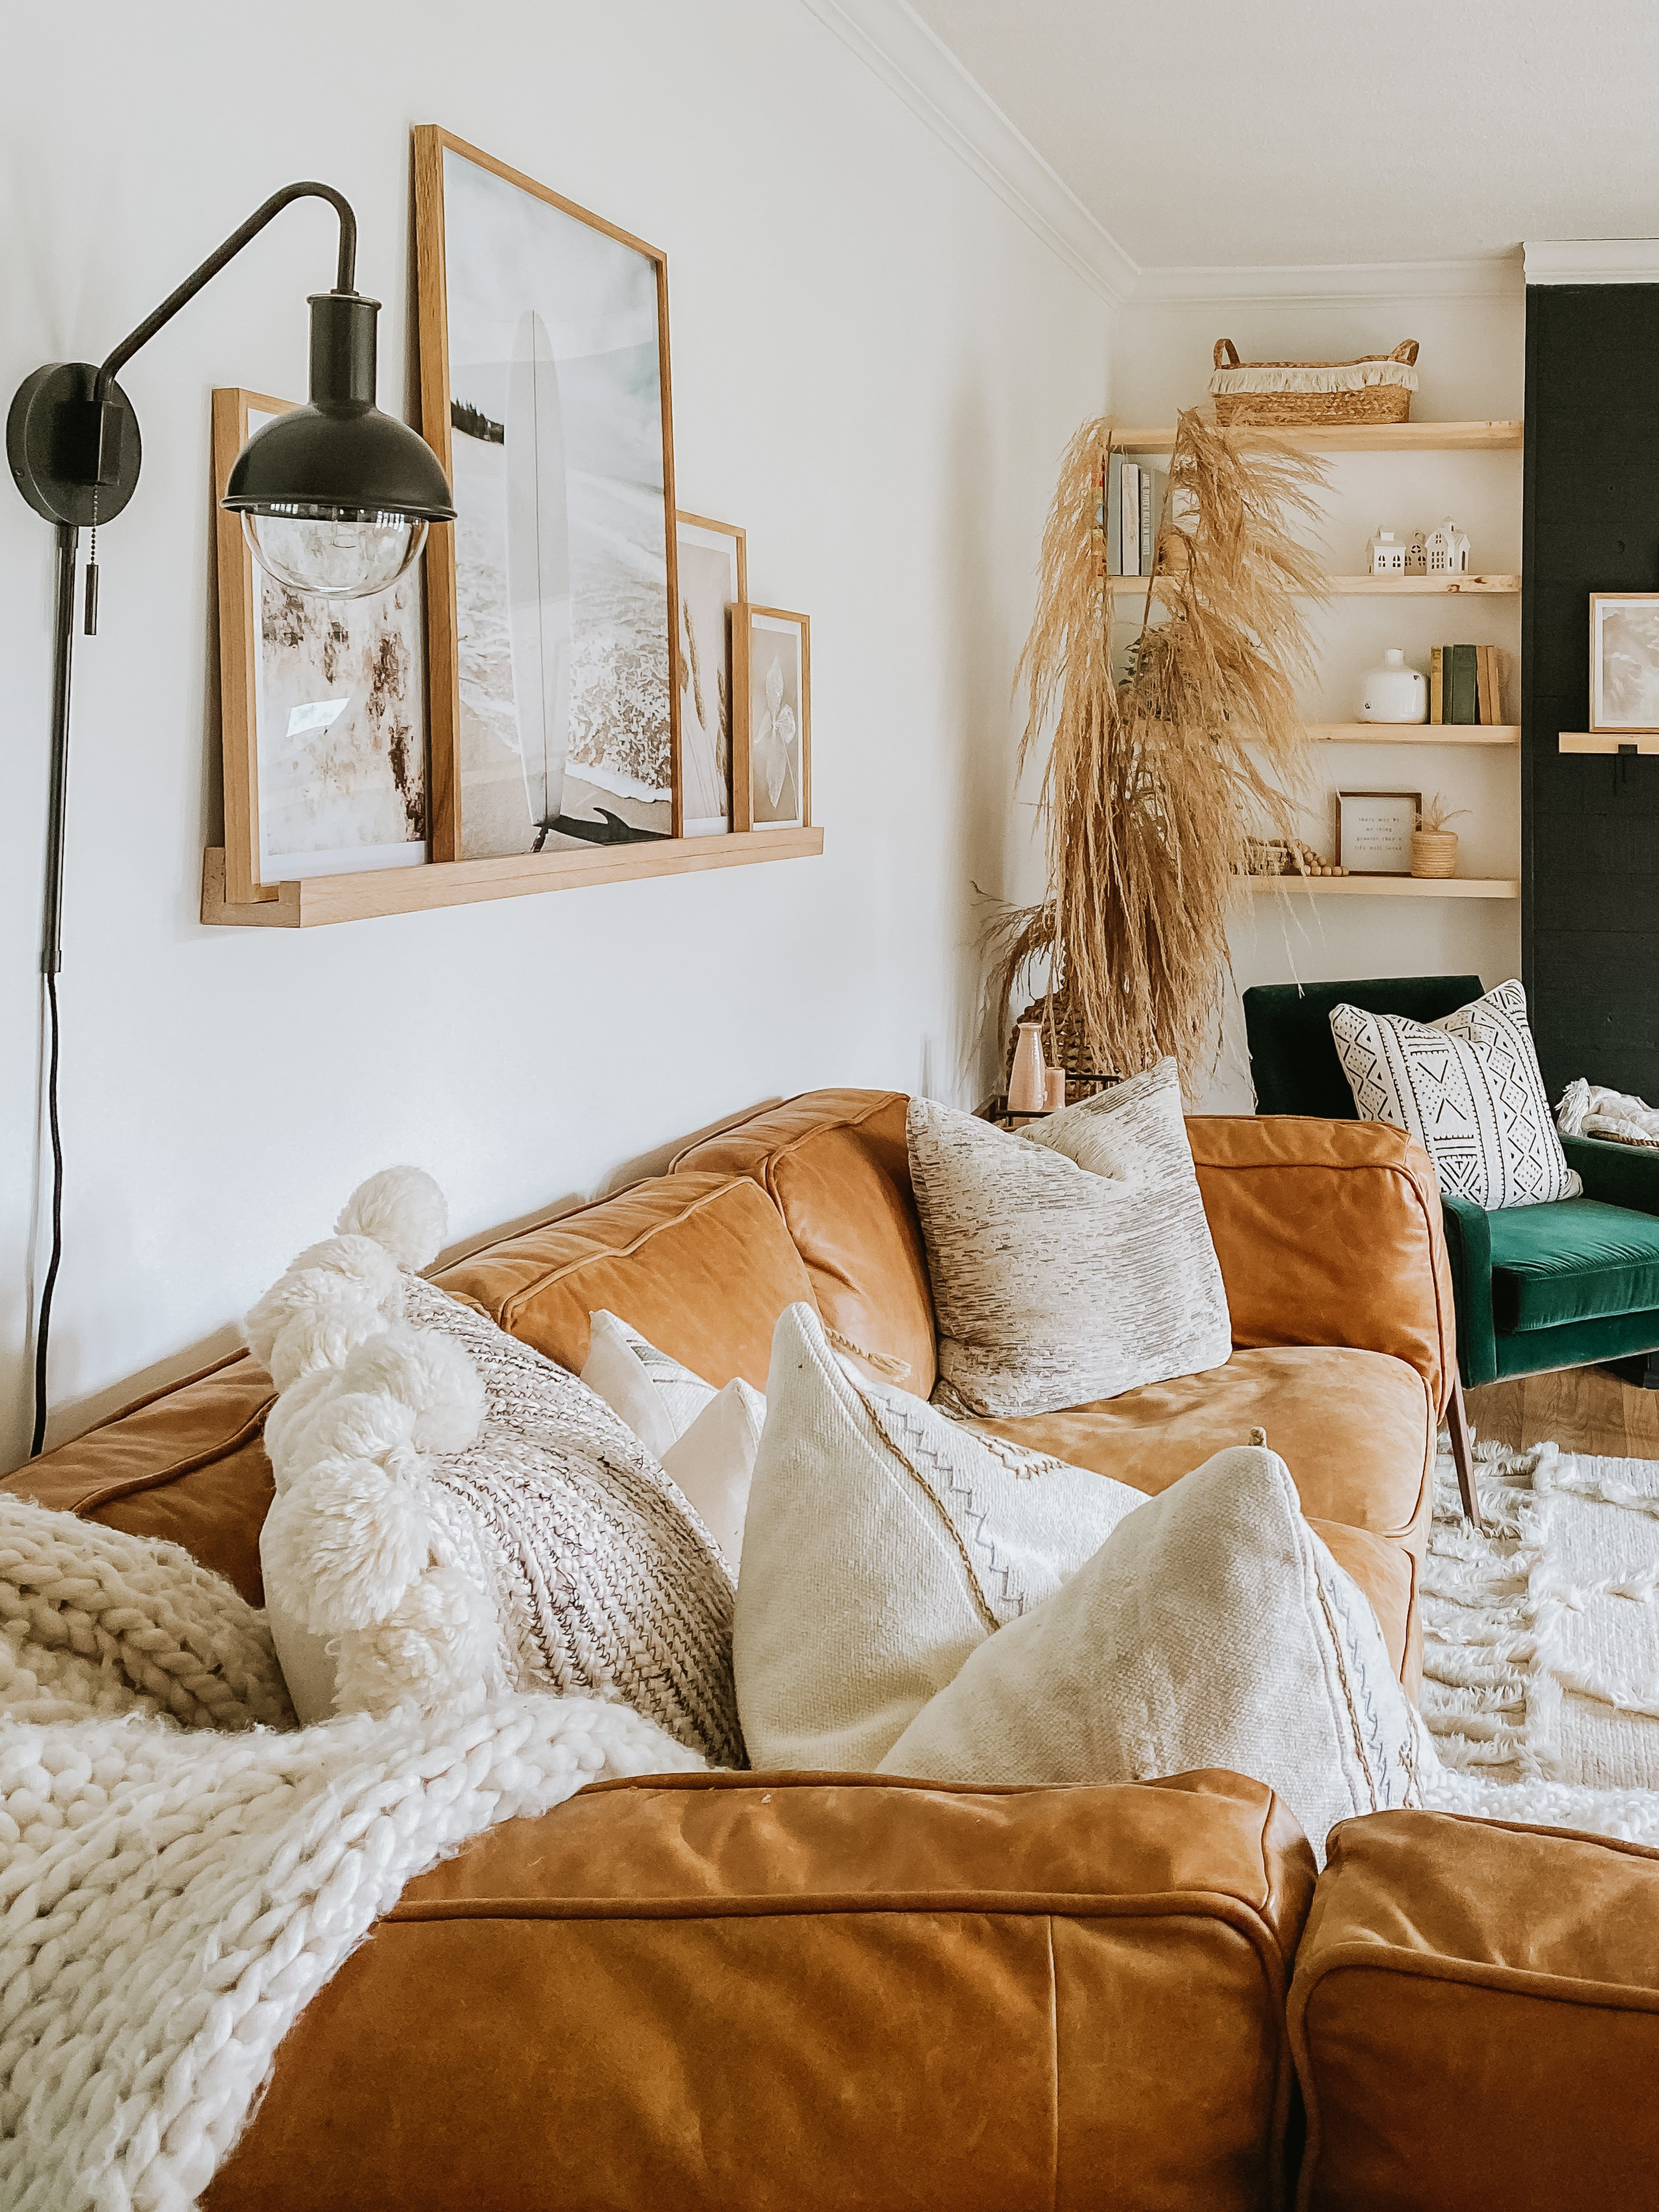 How To Create a Cohesive Picture Wall In Your Own Space. Layering Photographs, Painting and Abstract Art. Super Easy In Any style of Room